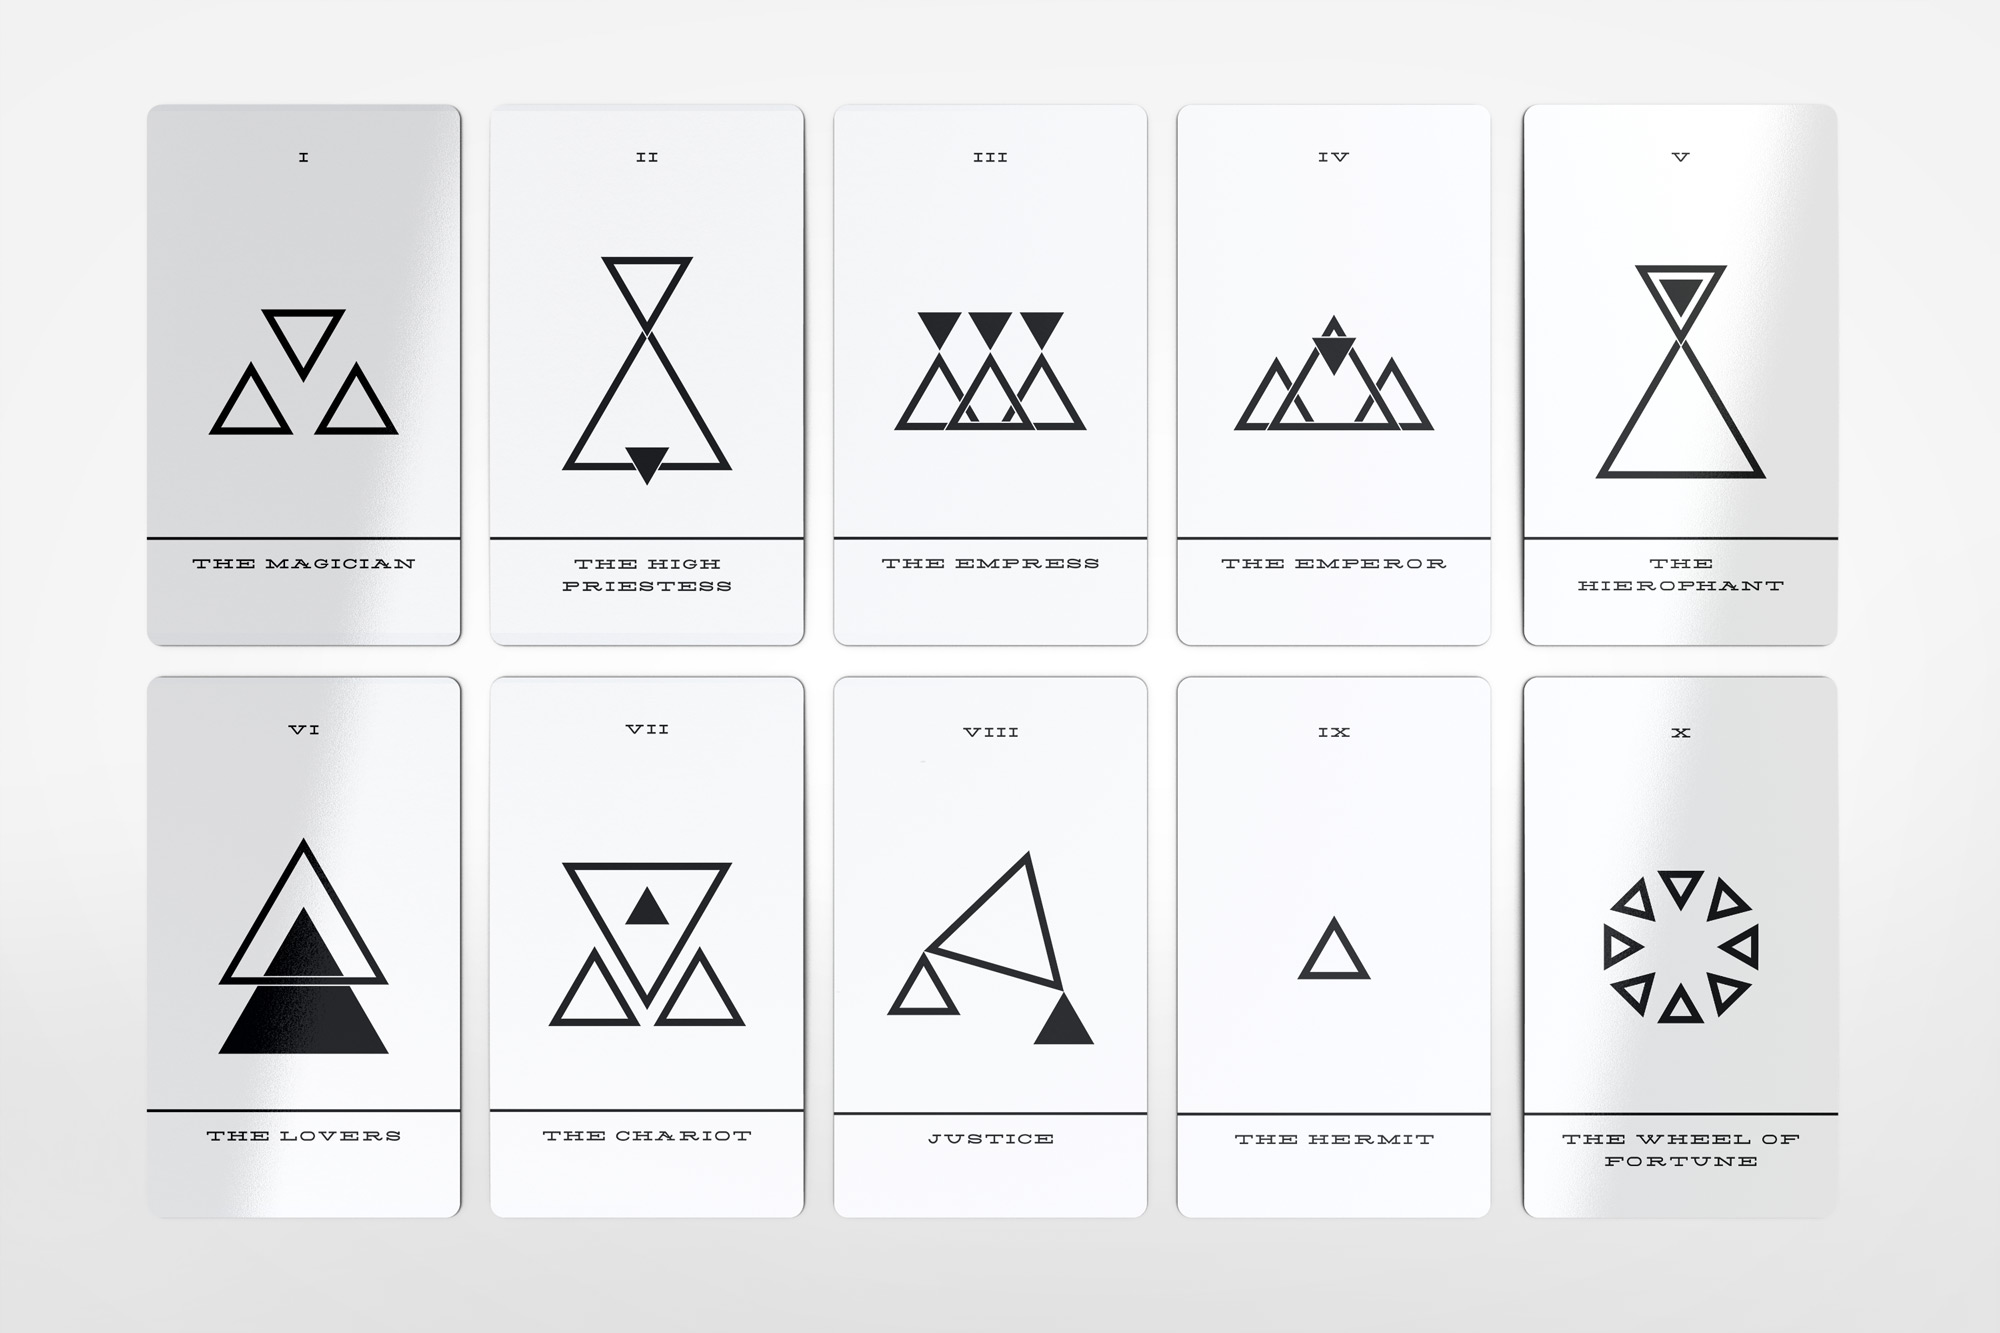 Tarot-Cards-Mockup-first-10-spread